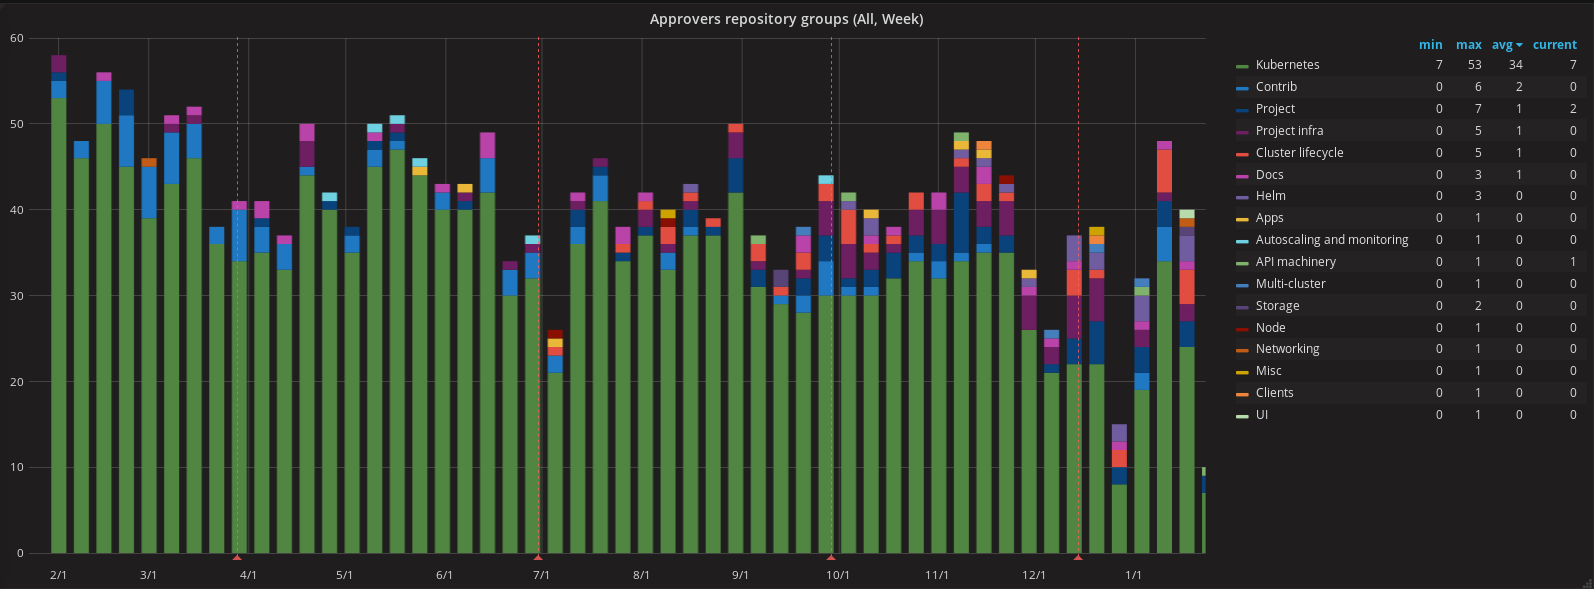 graph of approvals by week